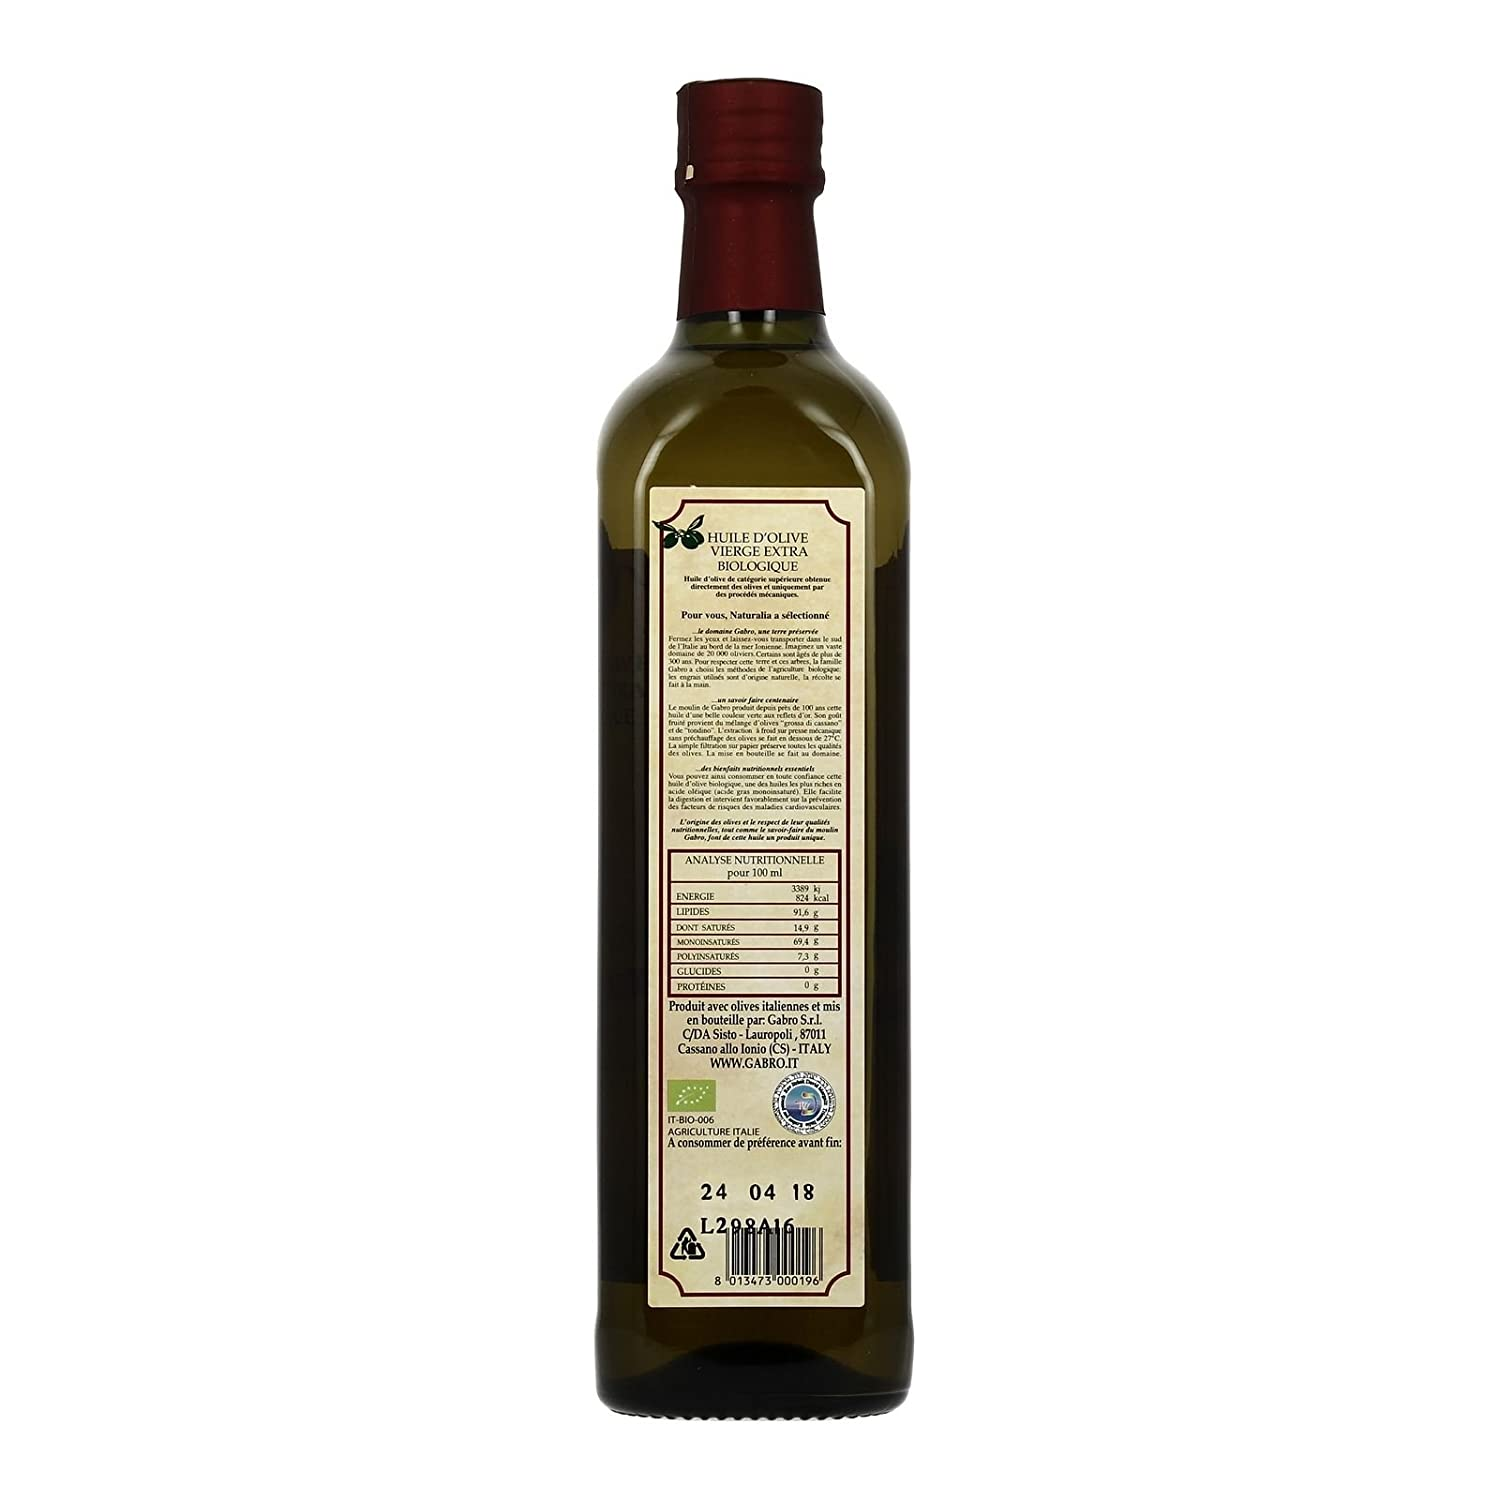 huile olive italienne qualite